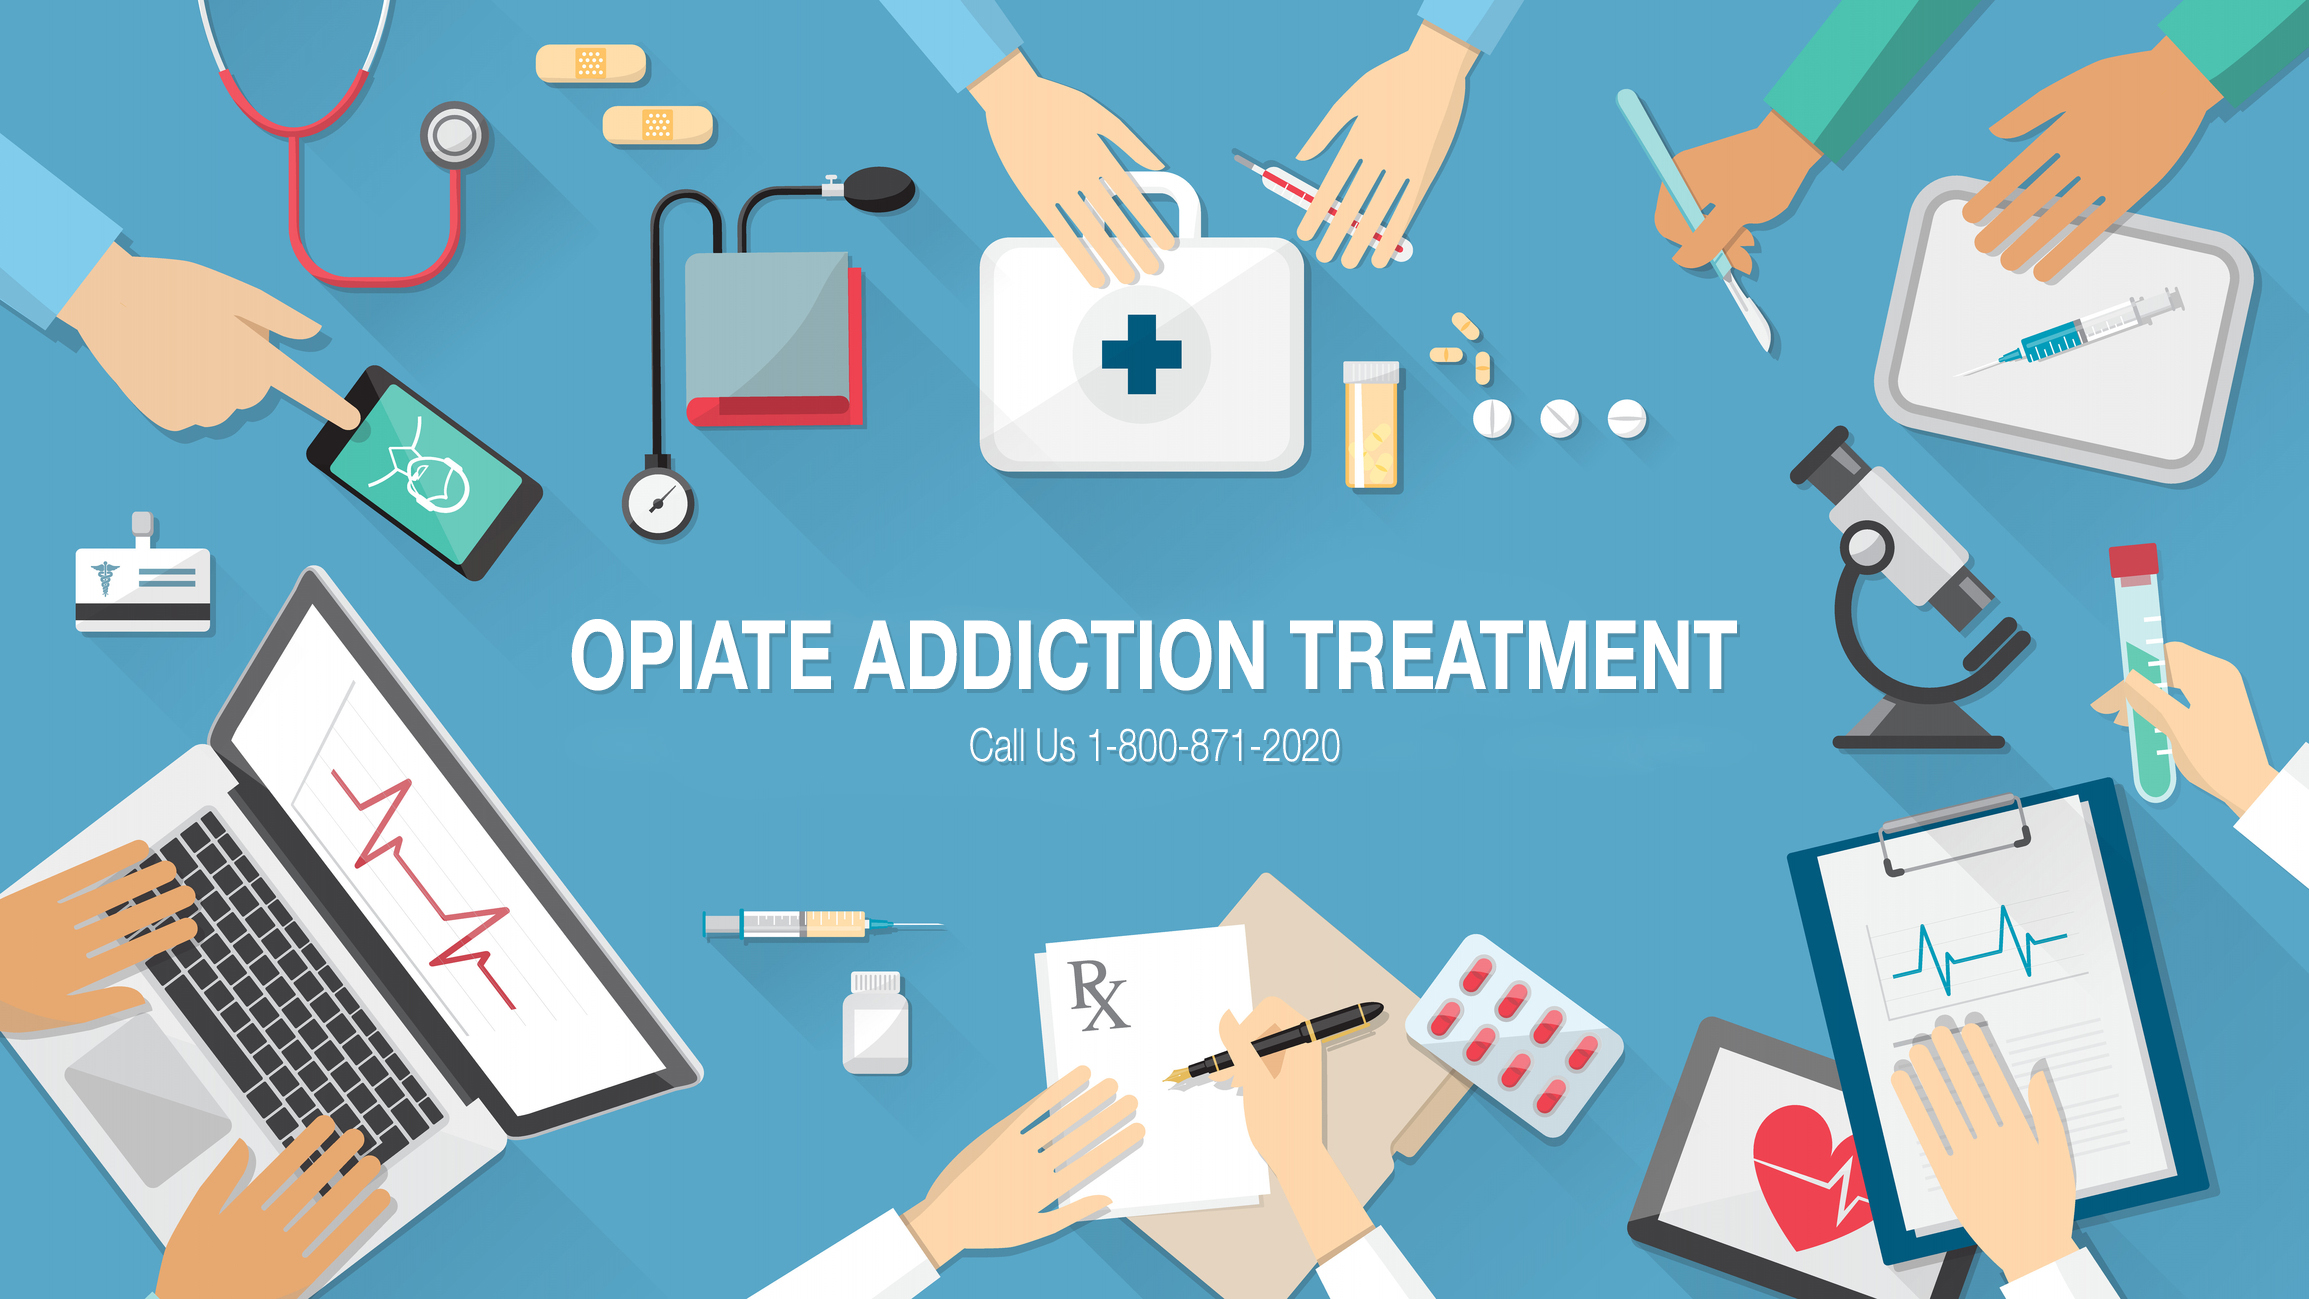 opiates drug addiction and heroin When someone has an addiction to prescription pain pills or heroin, it's very difficult for them to stop using the drug when they try to stop, they may have withdrawal symptoms: restlessness, muscle and bone pain, diarrhea, vomiting, trouble sleeping, cold flashes with goosebumps, and uncontrollable leg movements.